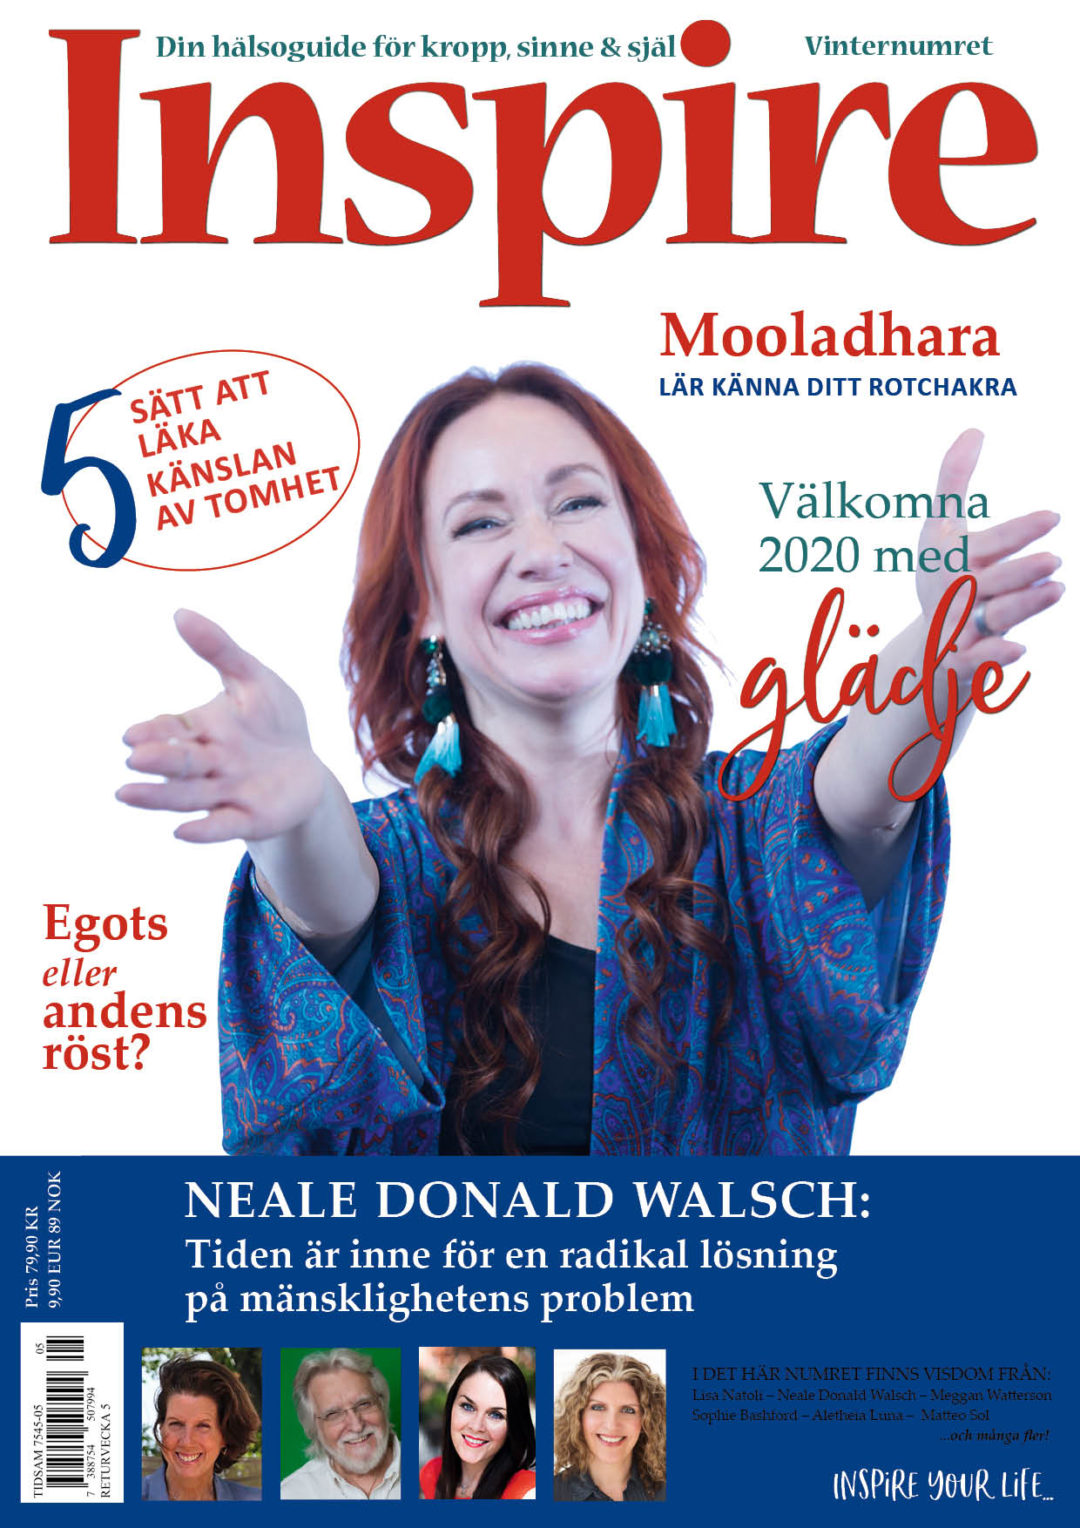 Zoë's Column, Inspire Magazine, December 2019